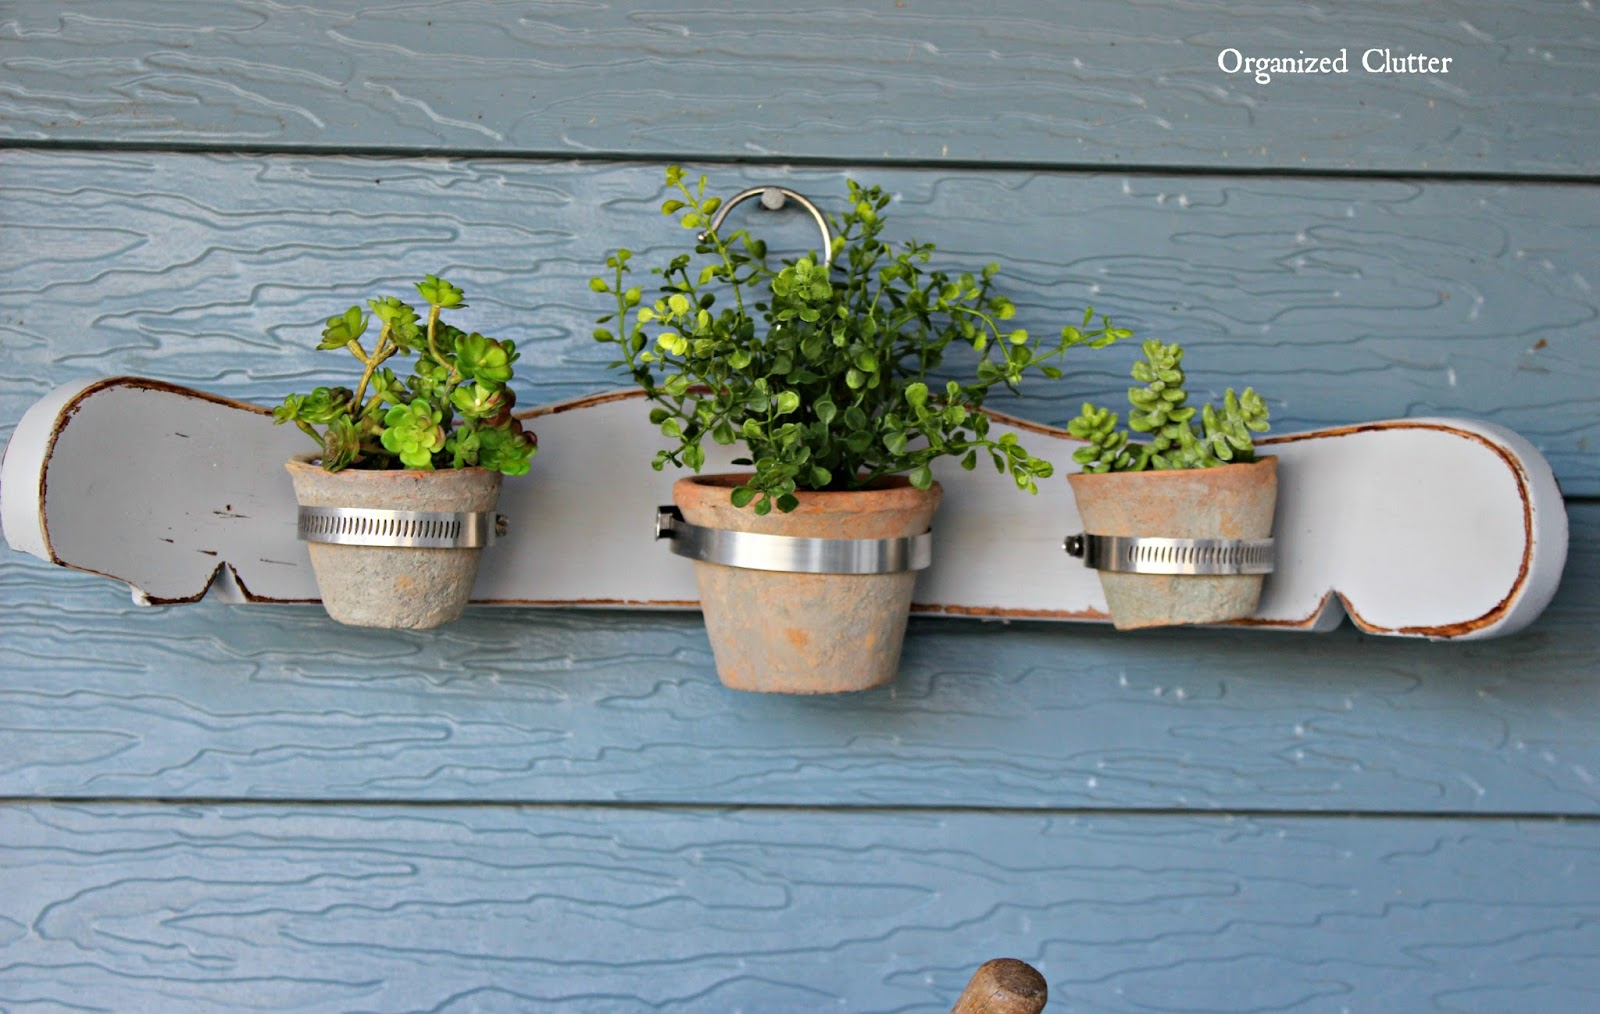 Creative diy wall planters organized clutter for Diy wall plant holder